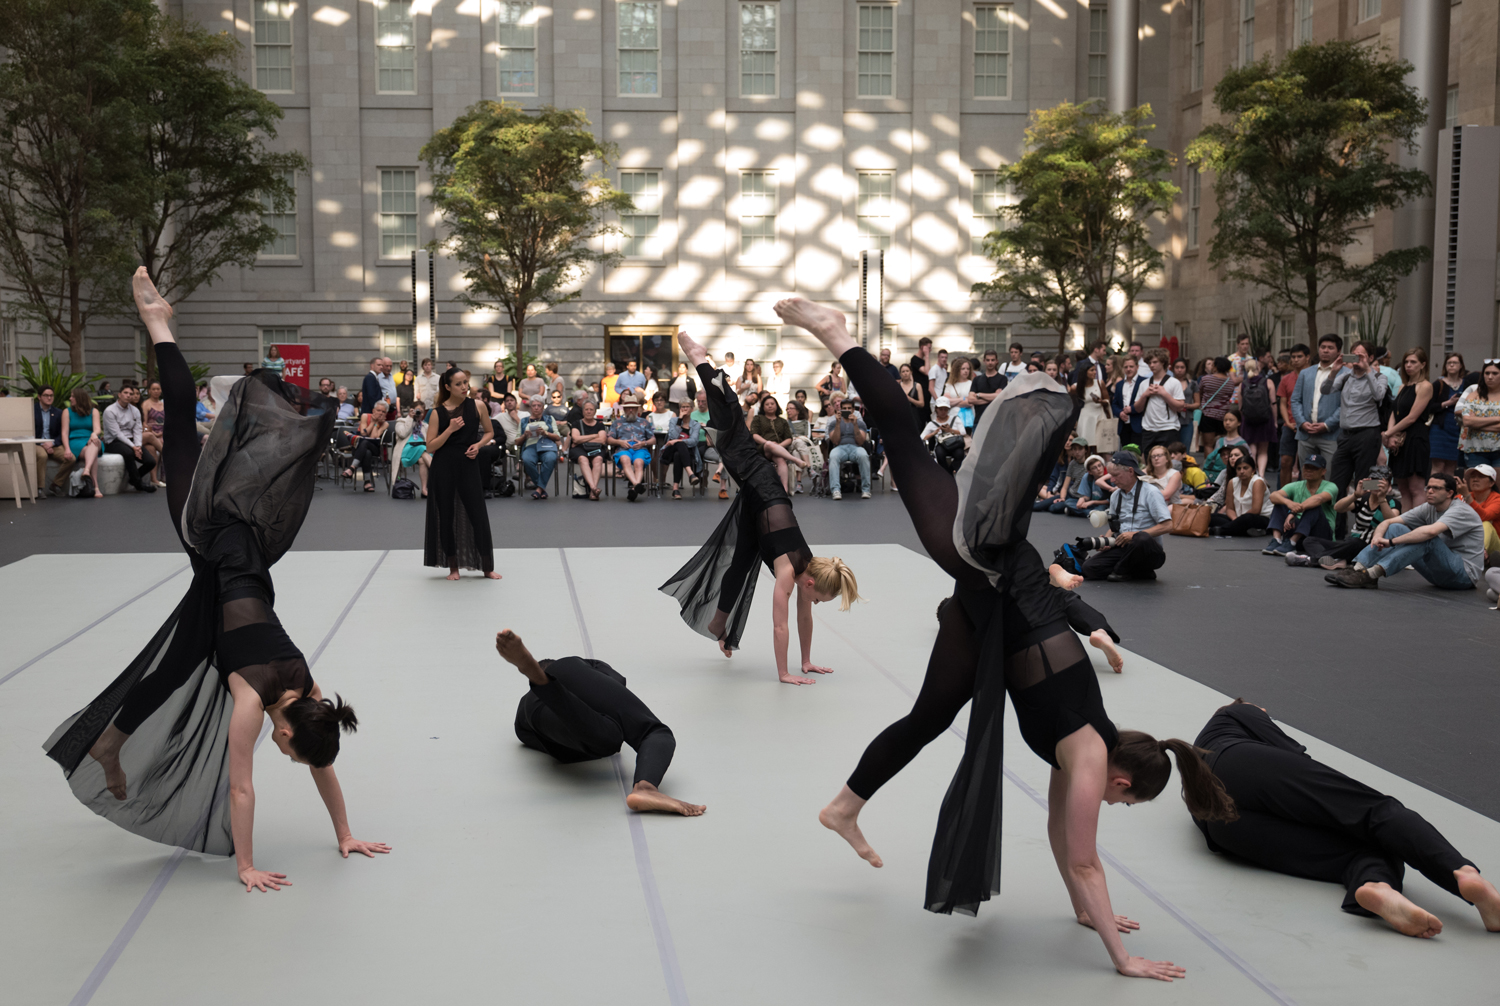 A group of dancers dancing with a large audience watching